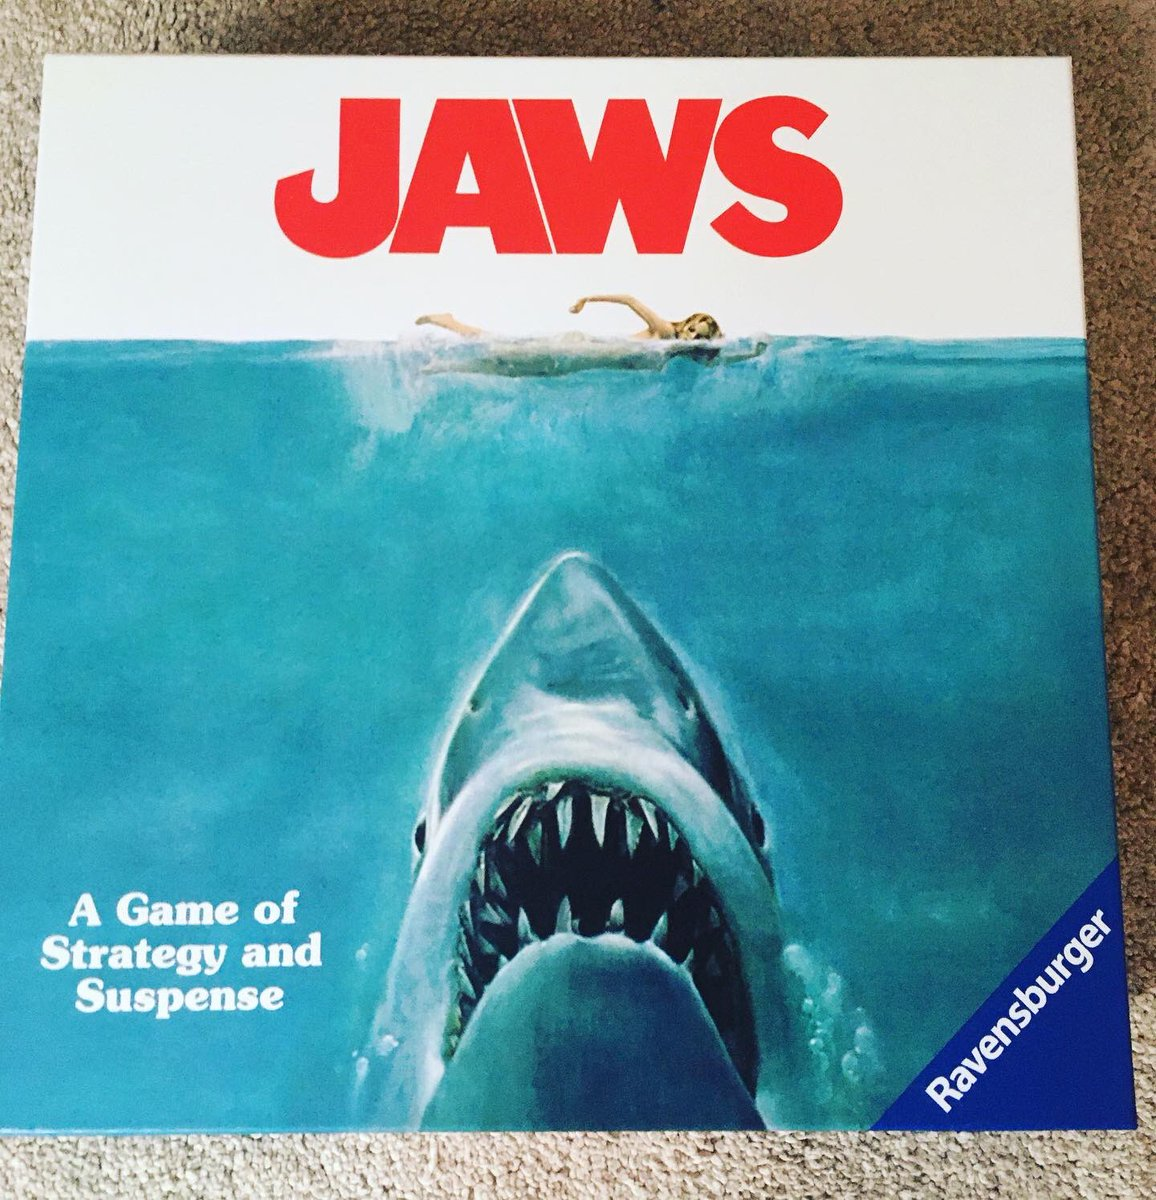 Well I've got the best board game ever. My wife is awesome #jaws pic.twitter.com/3WY0QSidd4